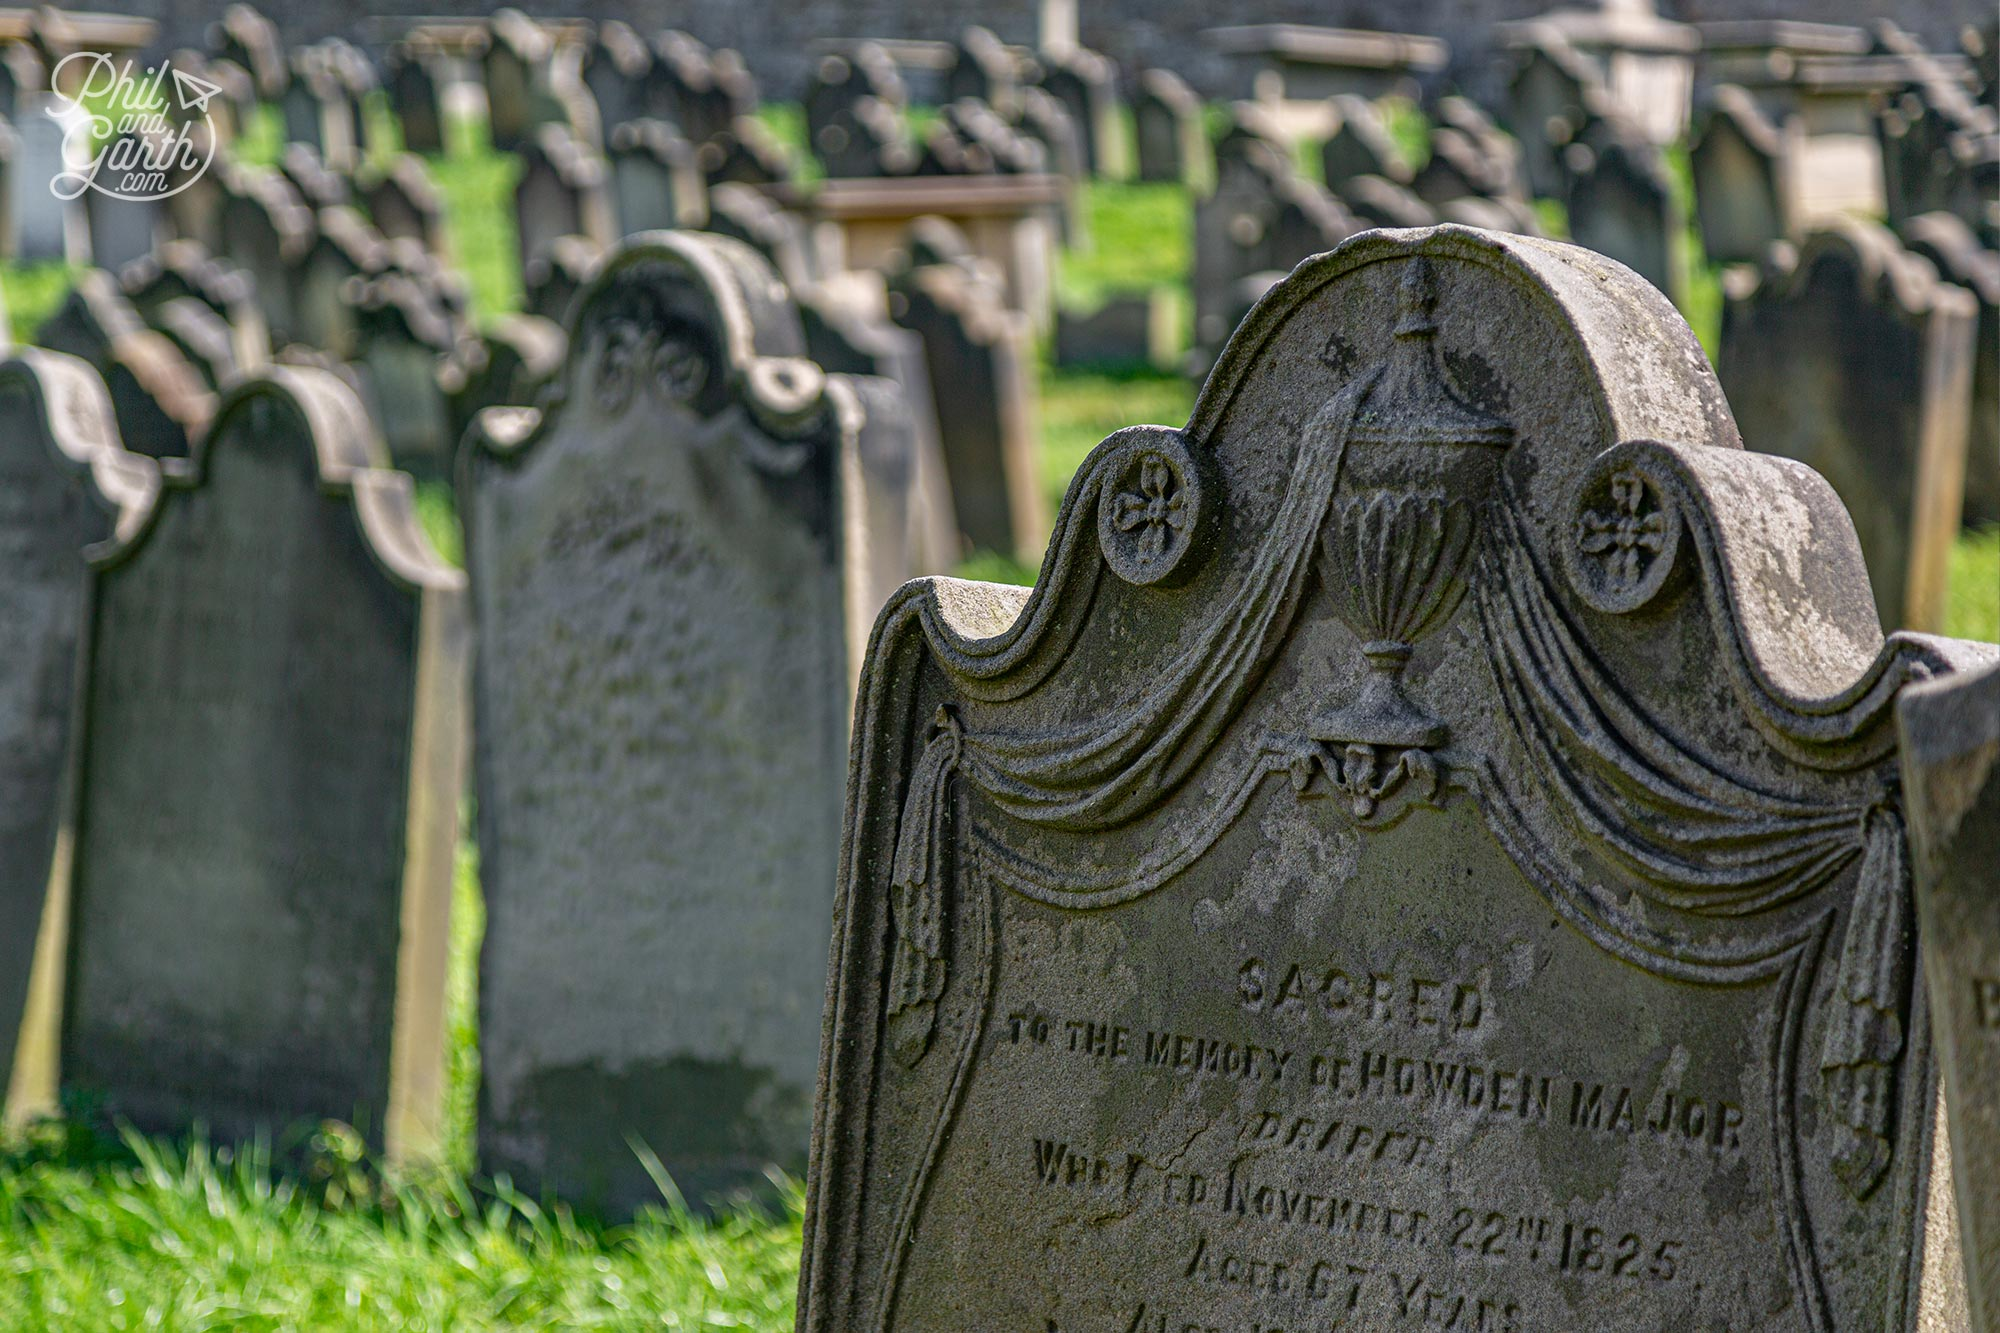 Bram Stoker used names from these graves for Dracula's victims